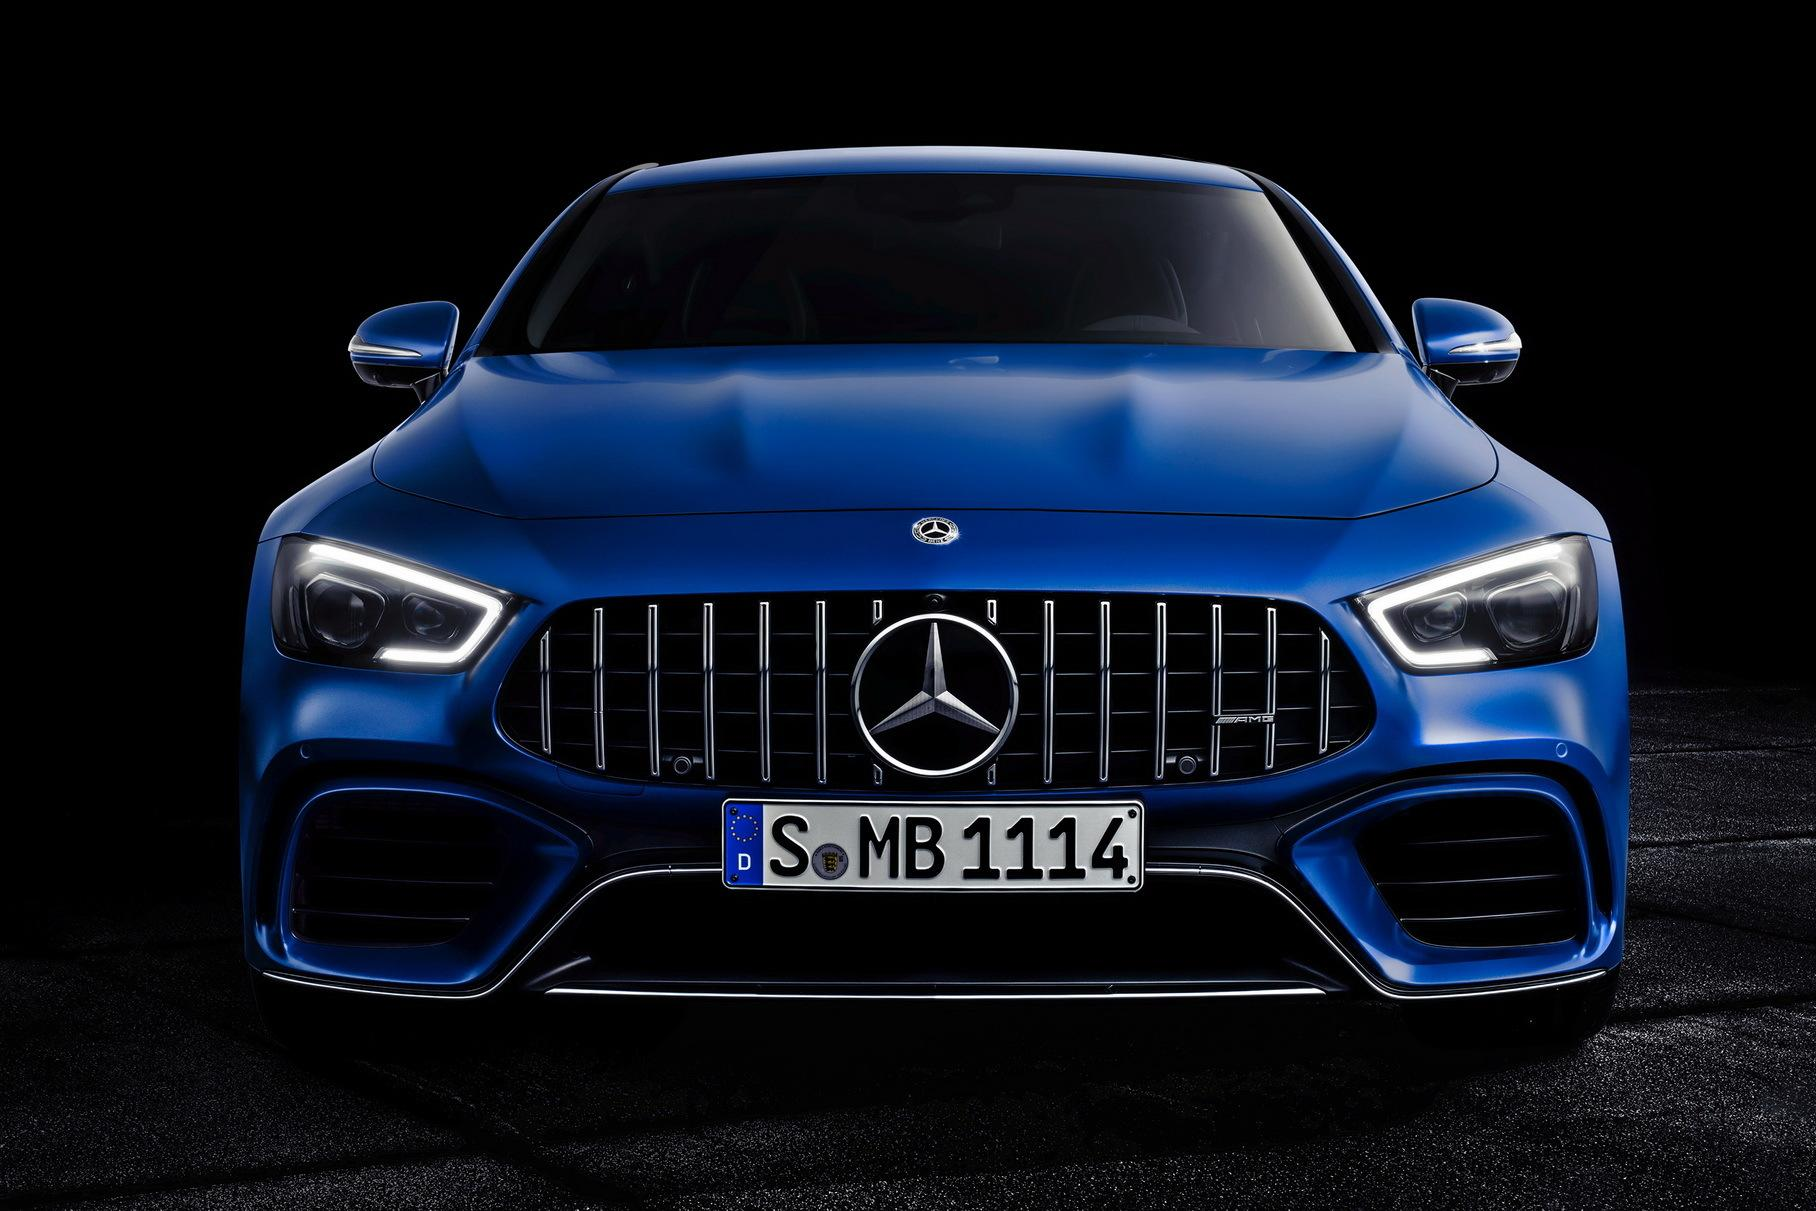 Tobias Moers, the leader of Mercedes-AMG, has confirmed that a hybrid version of the GT 4-Door Coupe (depicted here) is underway.